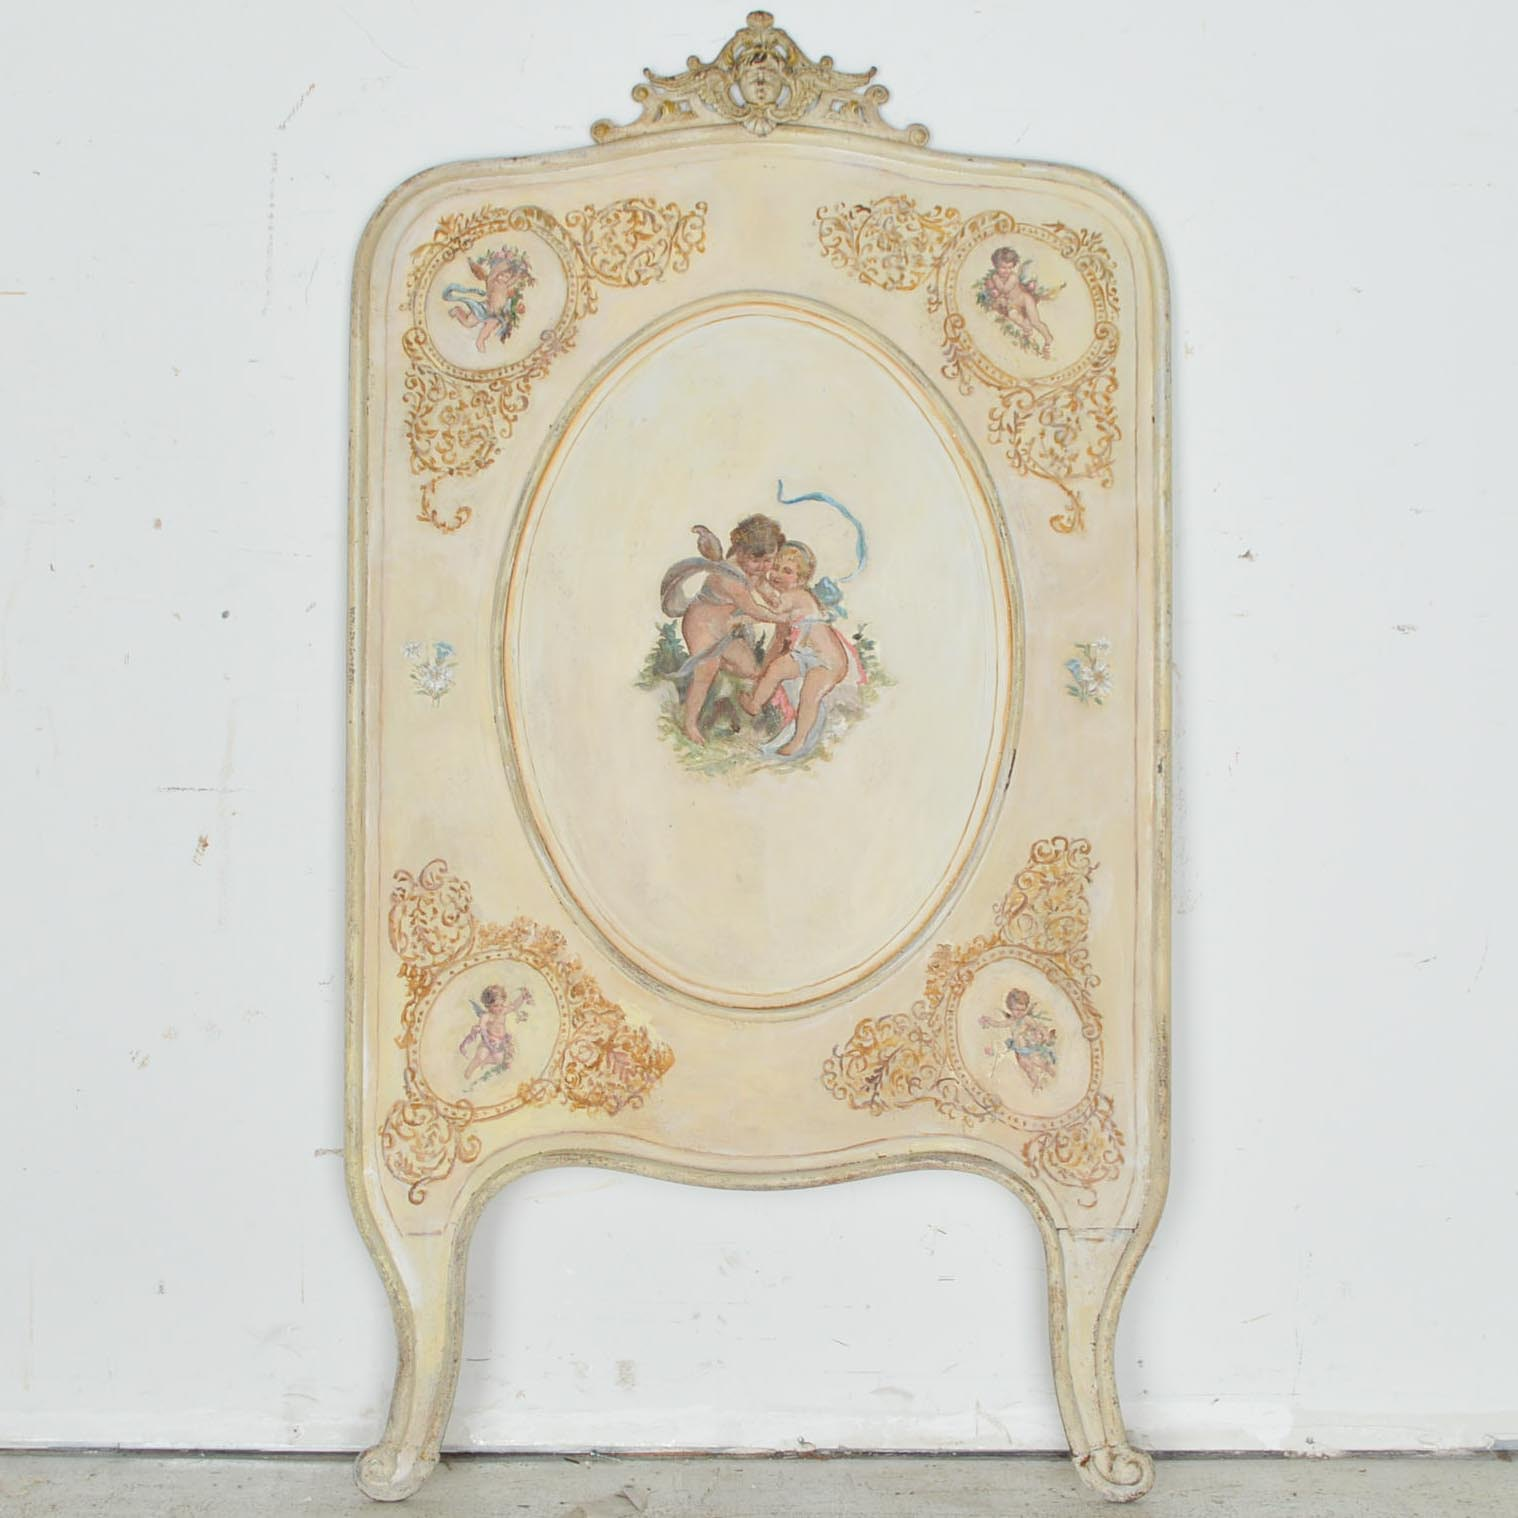 Antique Hand-Painted Cast Iron Child's Headboard with Cherubs